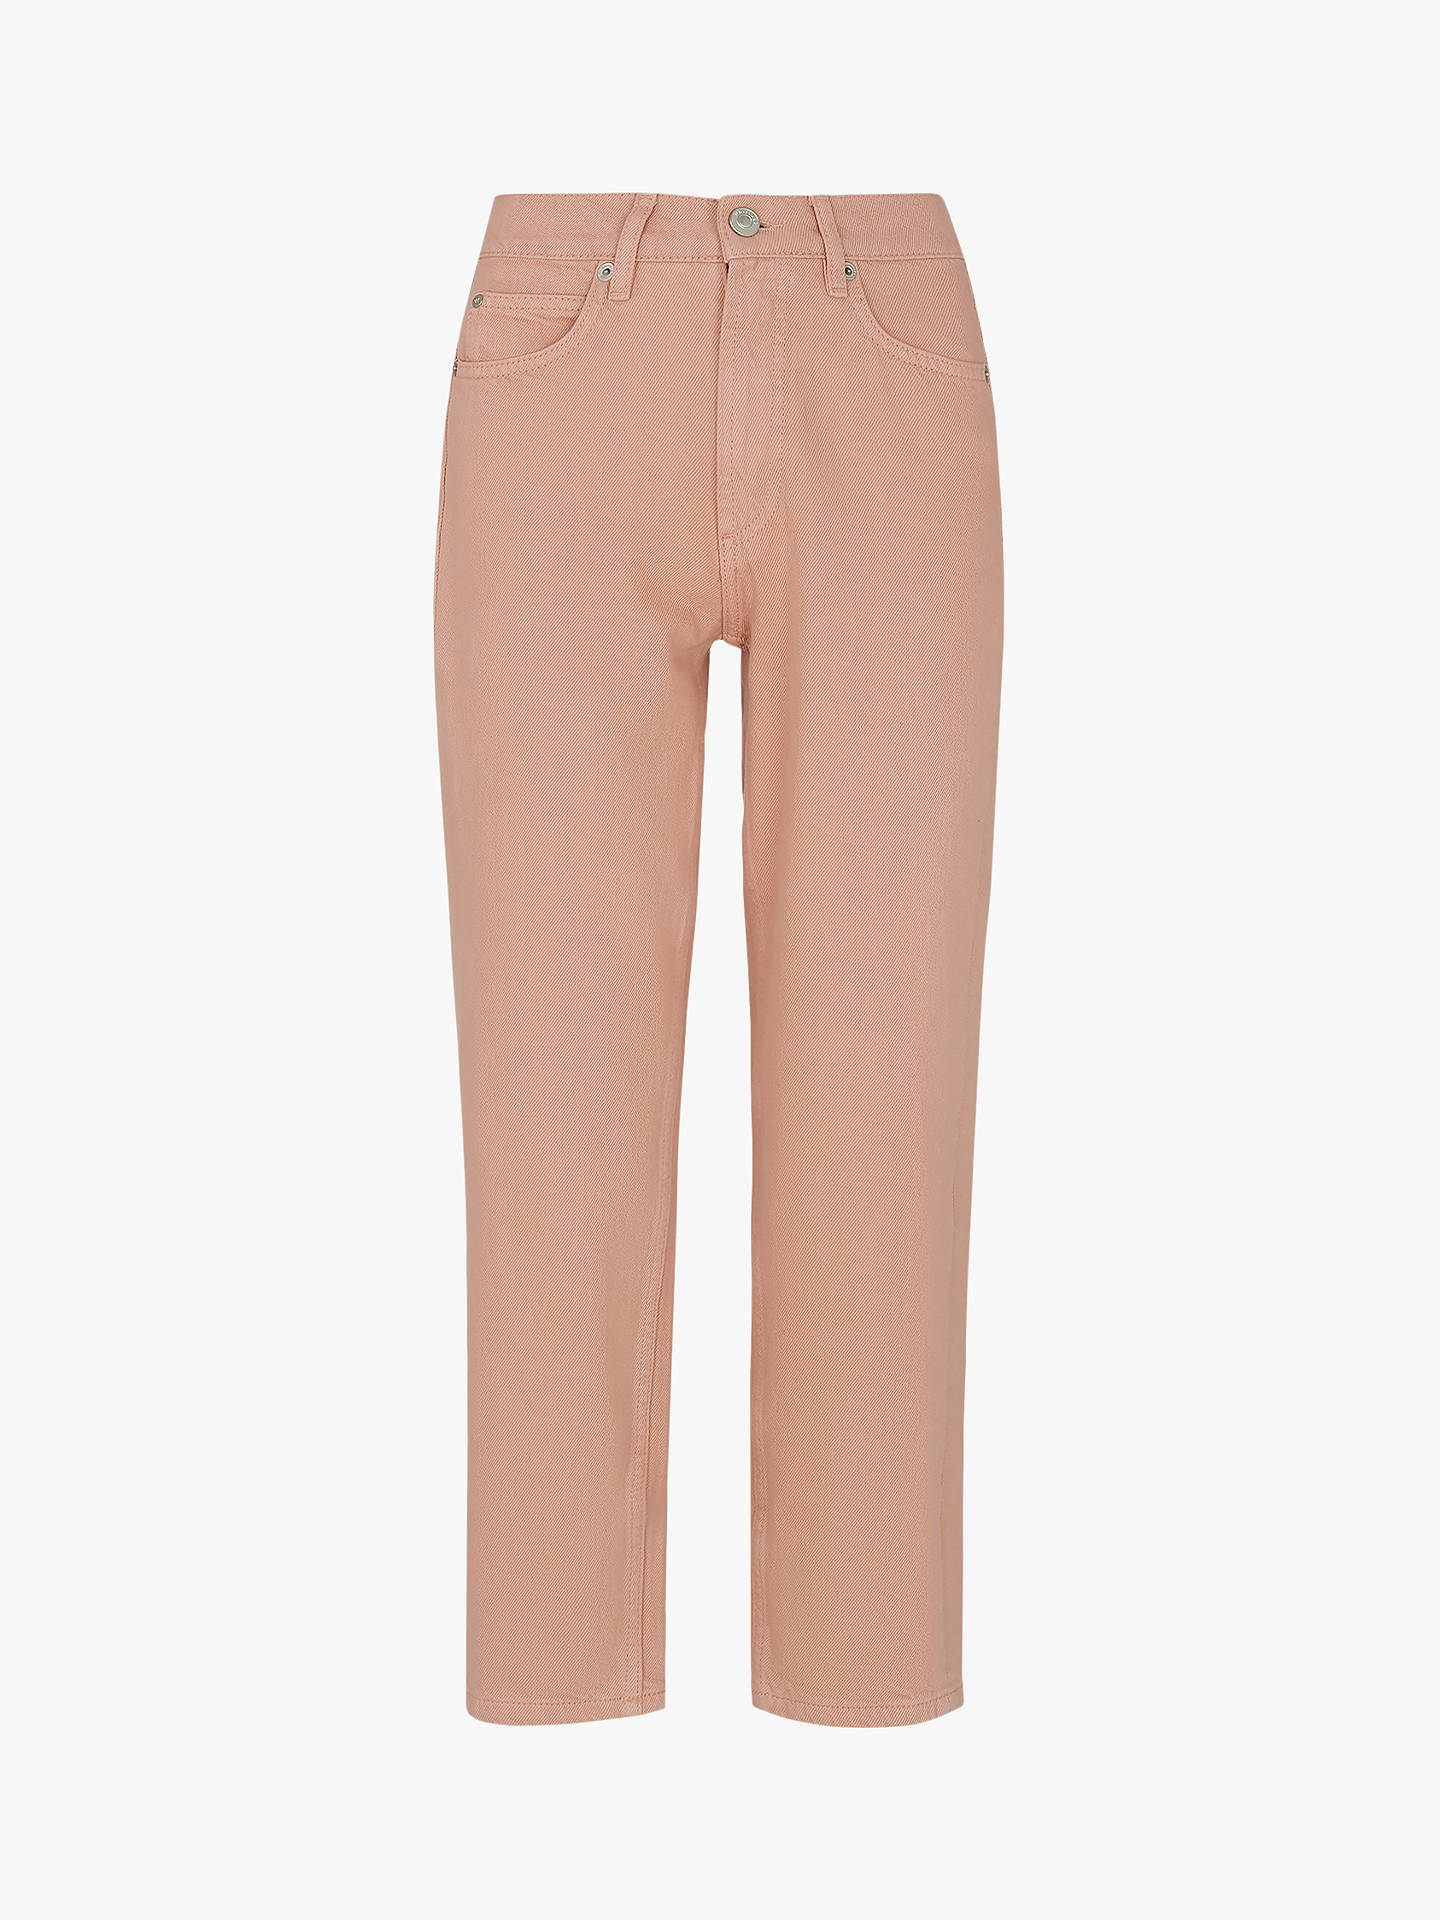 Buy Whistles Hollie Straight Leg Jeans, Pale Pink, 26 Online at johnlewis.com